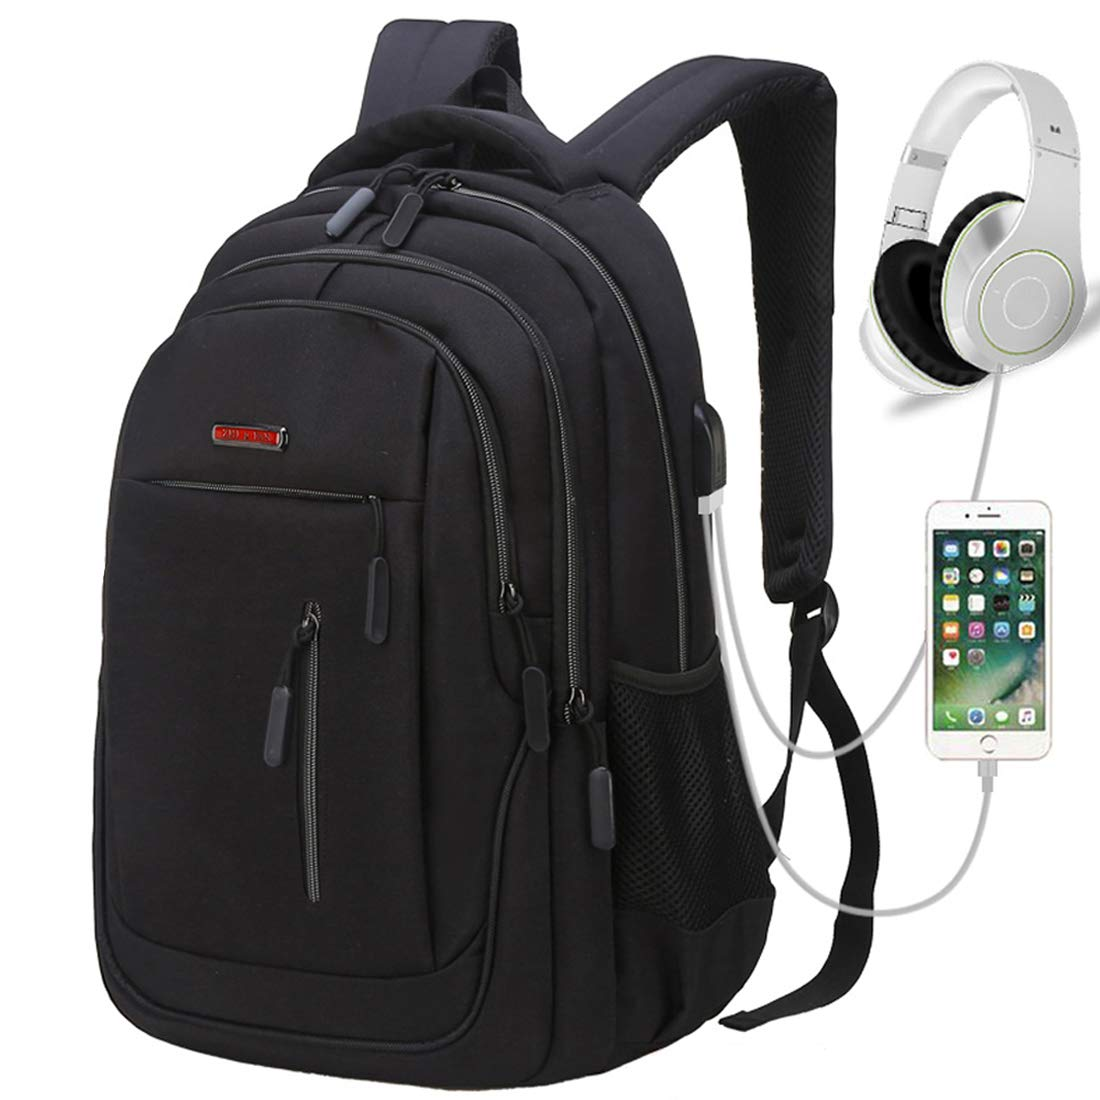 Travel Laptop Backpack, Business Laptop Backpacks with USB Charging Port and Headphone Interface,Water Resistant College School Computer Bag for Women & Men Fits 15.6 Inch Laptop and Notebook (Black)